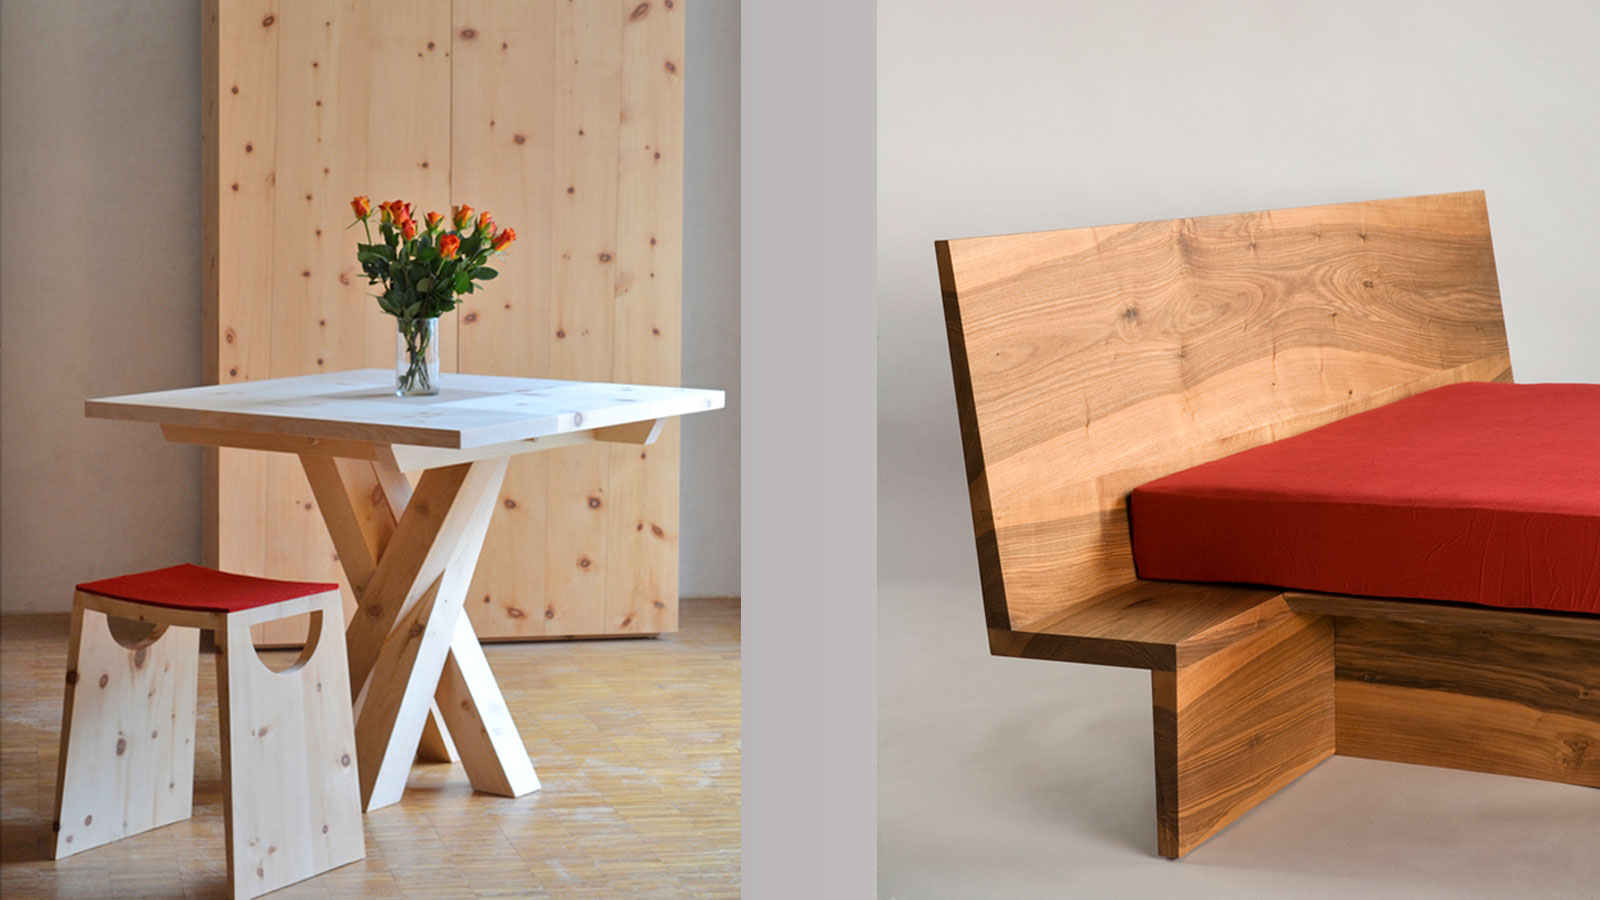 Table, stool and bed in Engadine pine wood by David Rohrbach, Zernez Switzerland